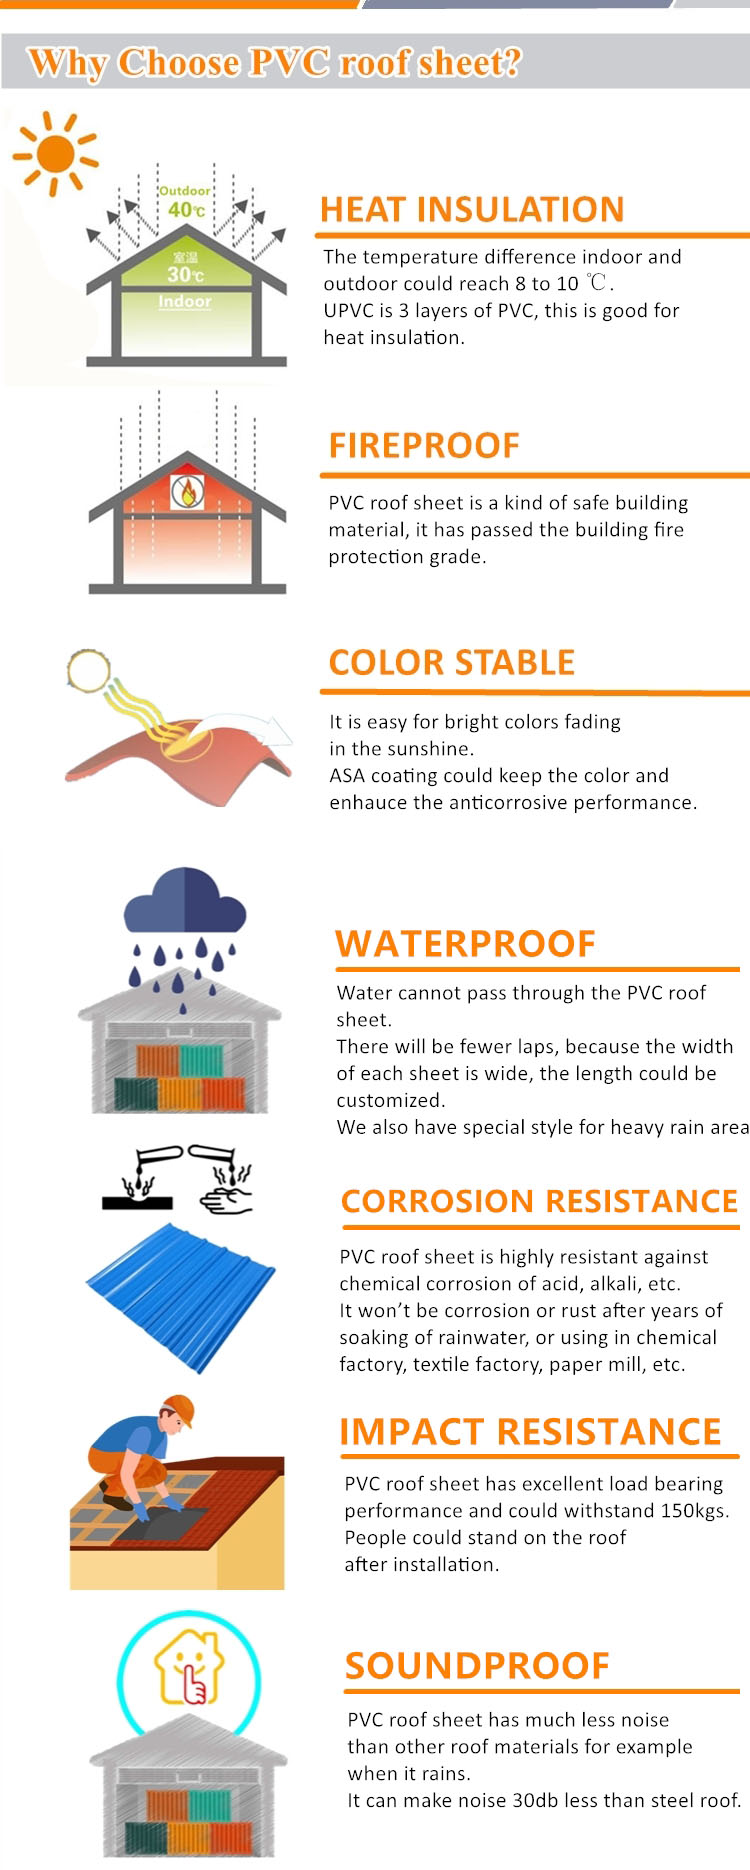 advantage of PVC roofing sheet